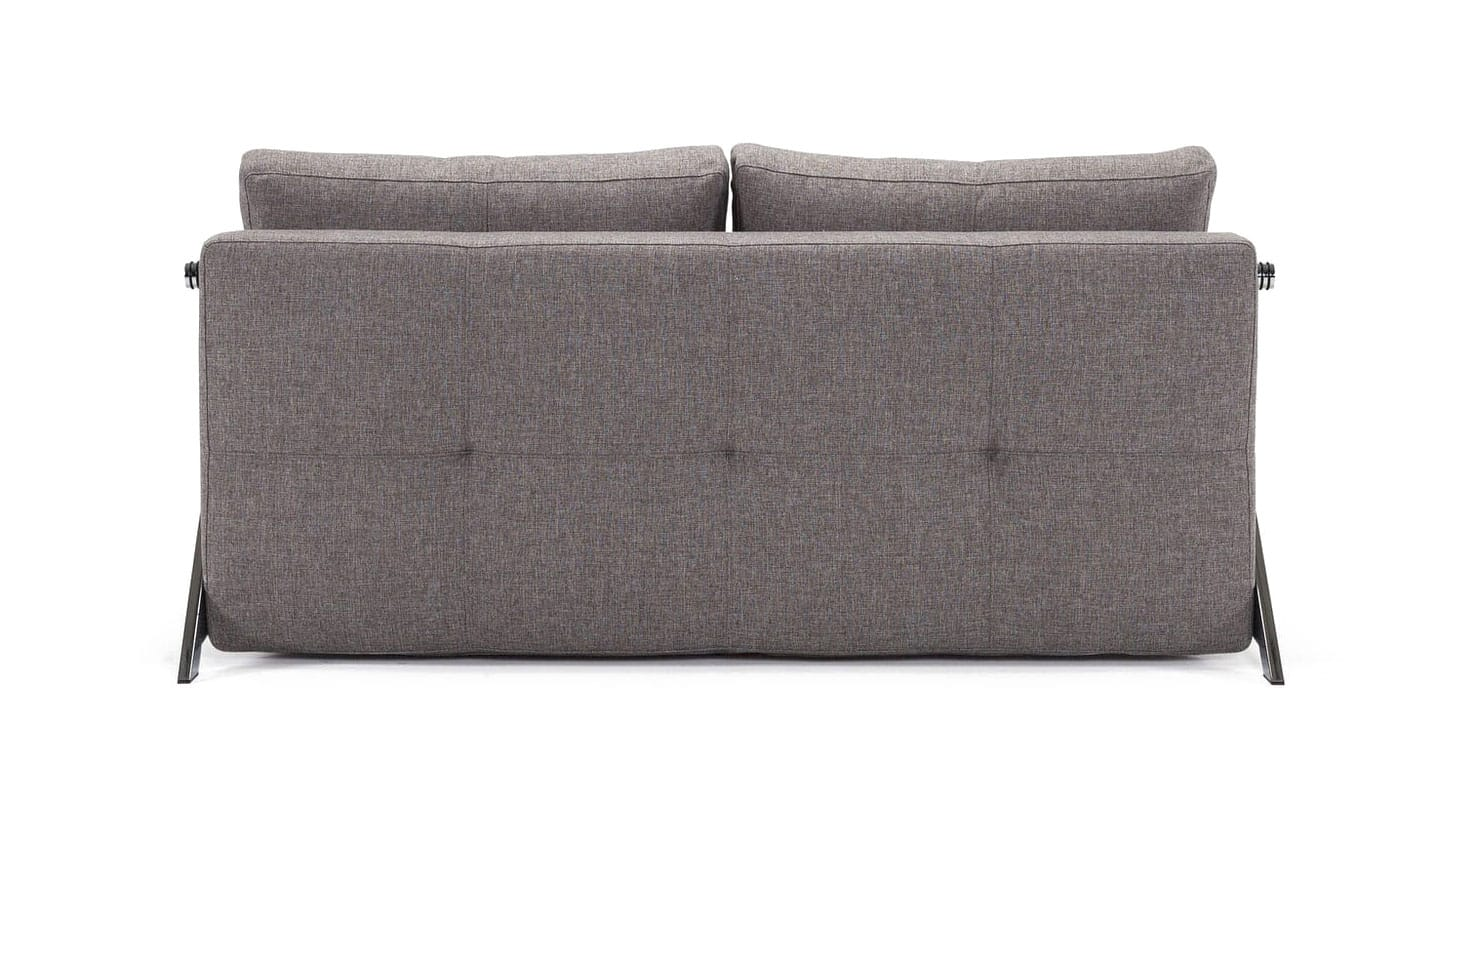 Cubed 02 Deluxe Sofa (Full Size) Mixed Dance Gray by Innovation